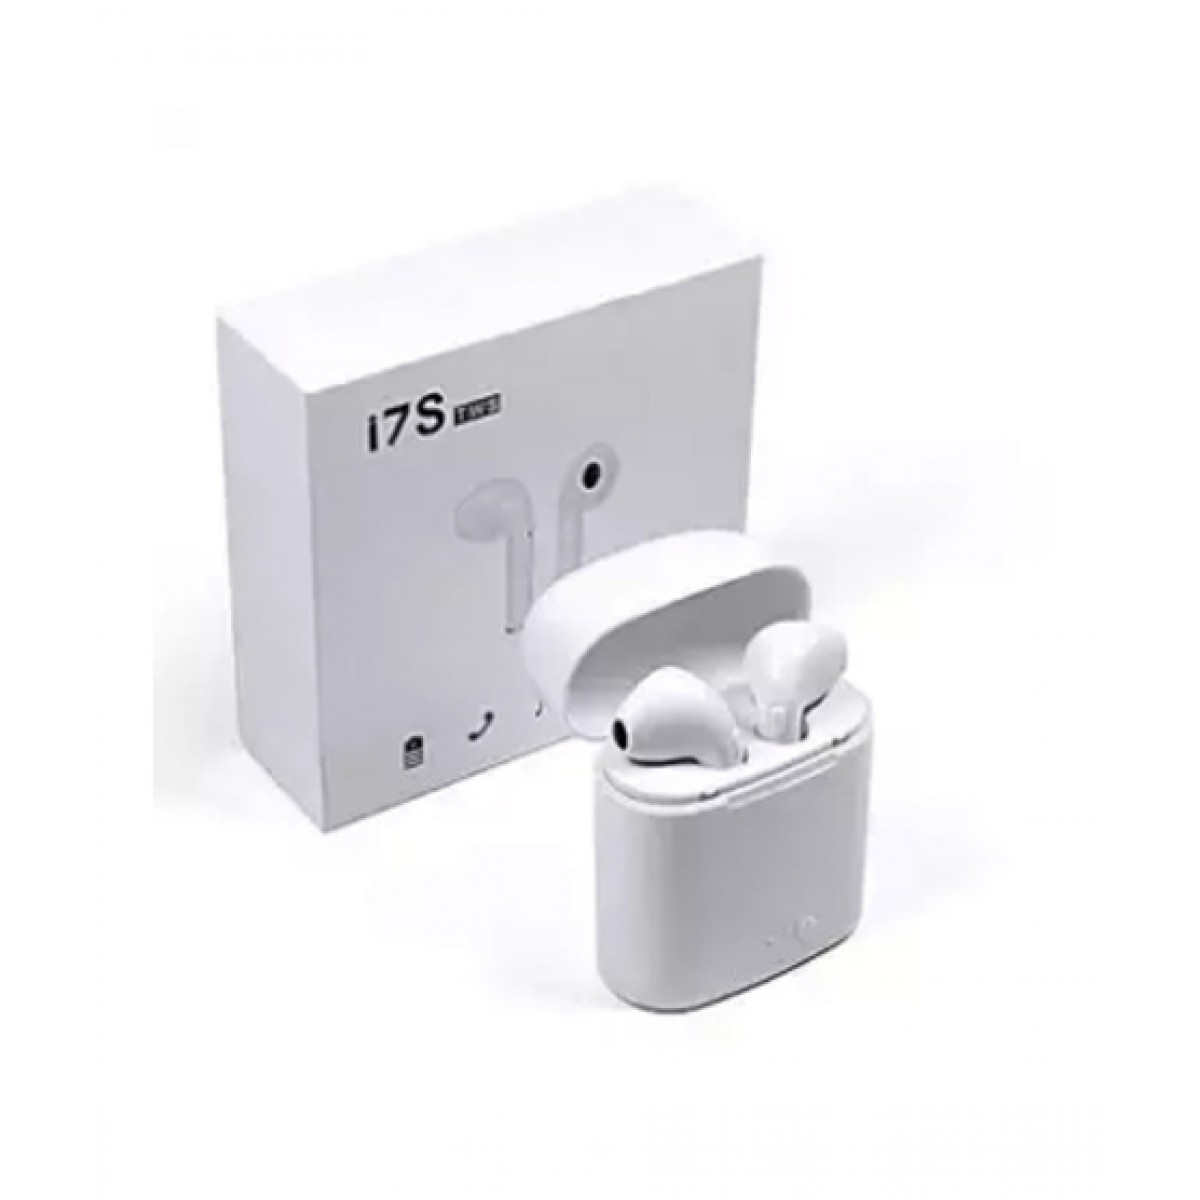 I7s Tws Dual Bluetooth Wireless Earbuds Price In Pakistan Buy Tech Expert I7s Tws Bluetooth Earbuds With Charging Dock Ishopping Pk